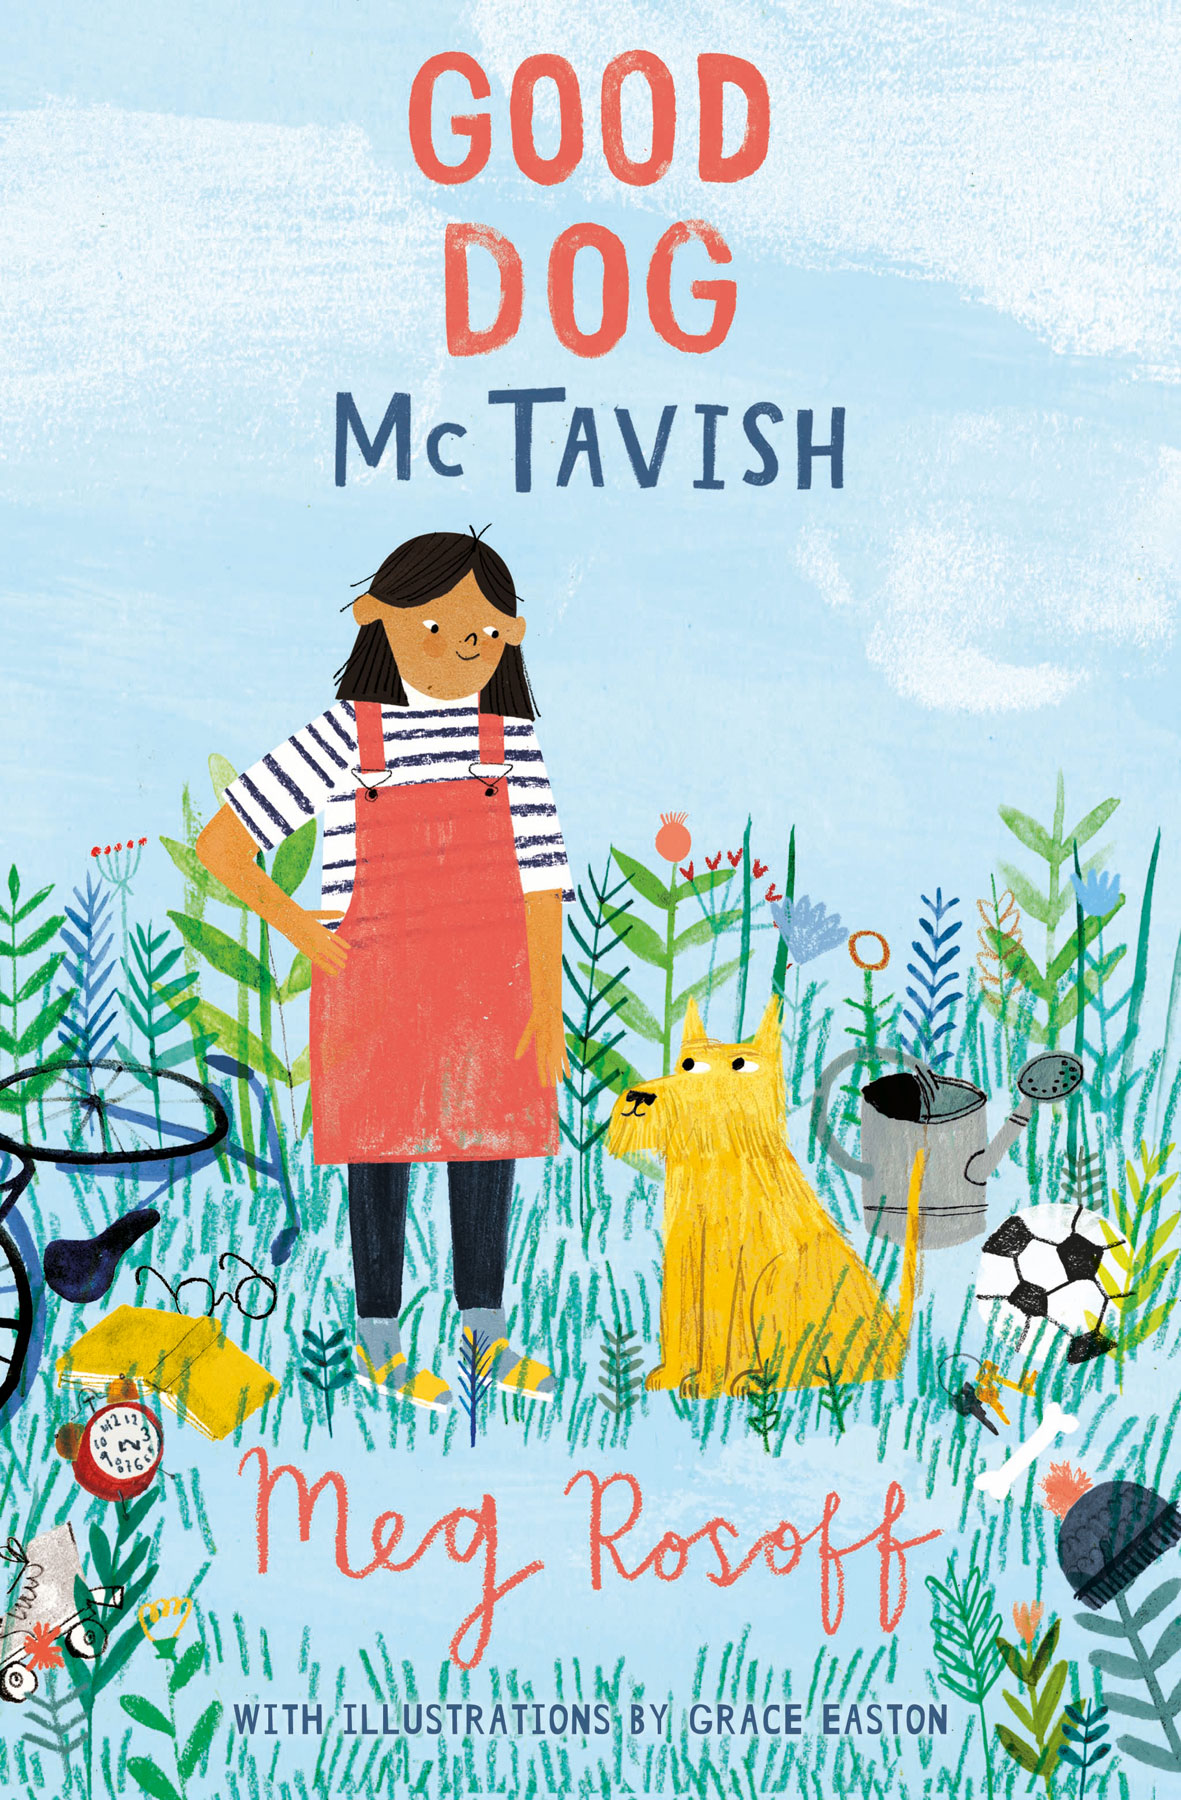 Good-Dog-McTavish-front-cover-large-web.jpg